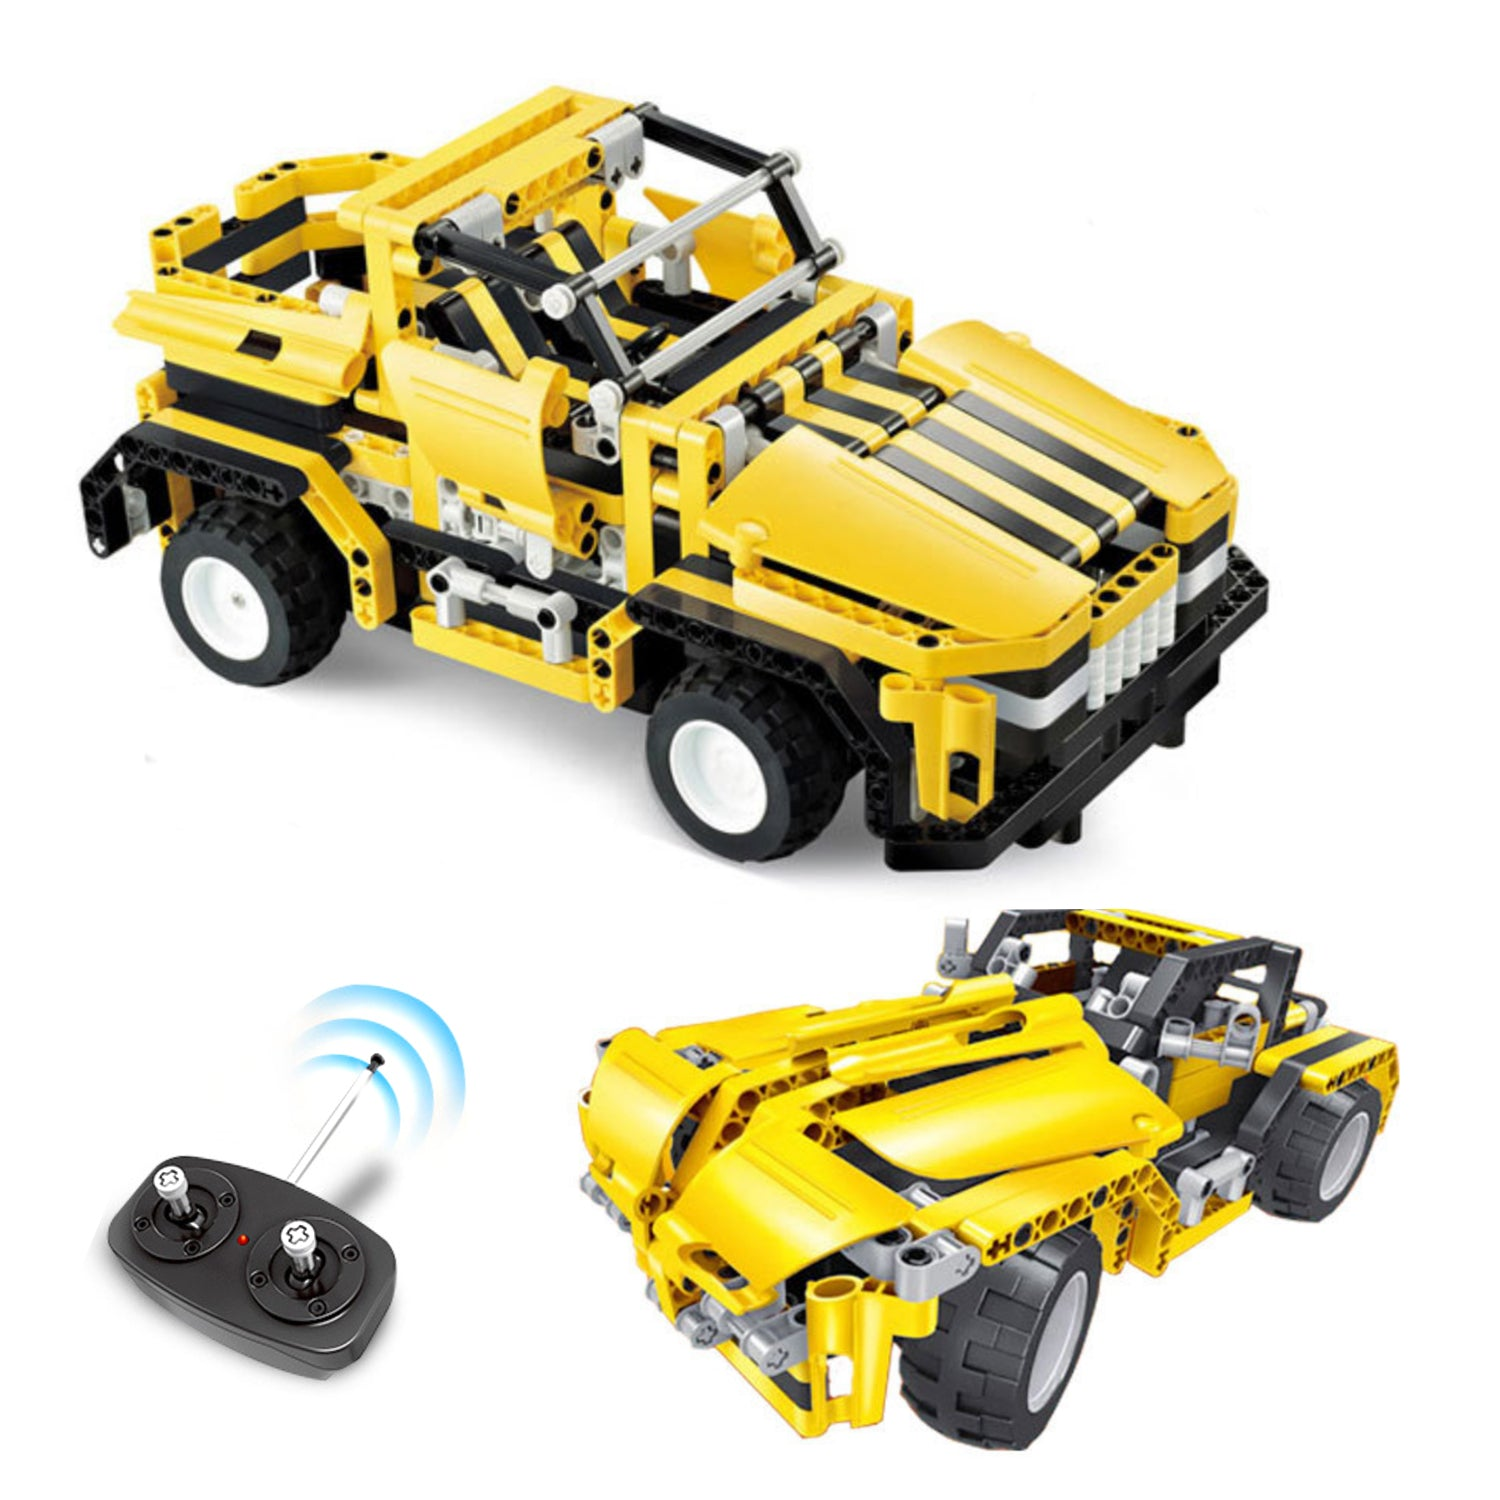 Remote Control Yellow Jeep Building Set